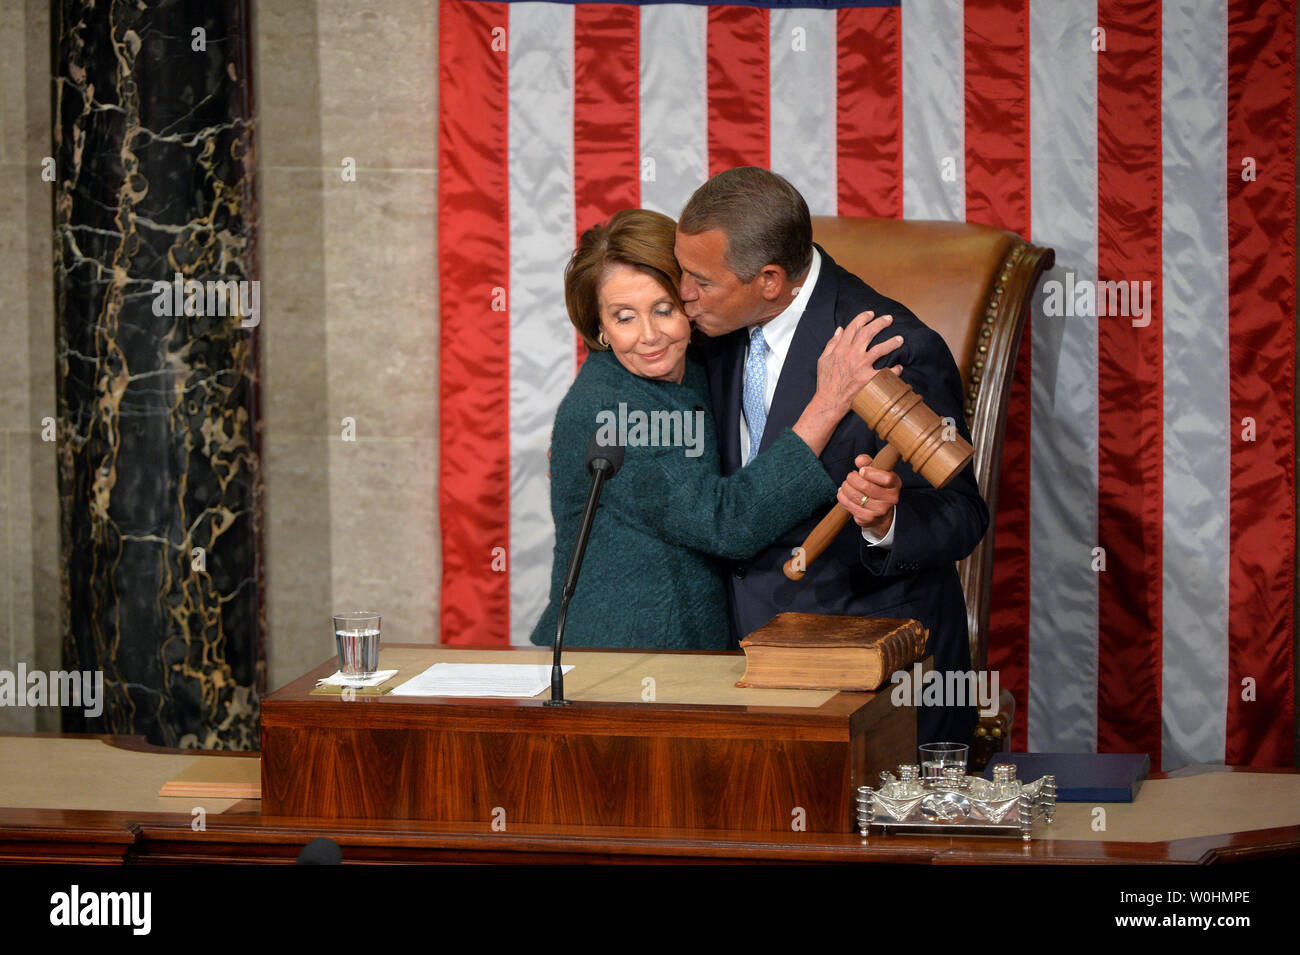 Speaker of the House John Boehner, R-OH, kisses House Minority Leader Nancy Pelosi, D-CA, after he was reelected as the Speaker during the first day of the 114th Congress, inside the House Chambers of the U.S. Capitol Building in Washington, D.C. on January 6, 2015. Photo by Kevin Dietsch/UPI - Stock Image